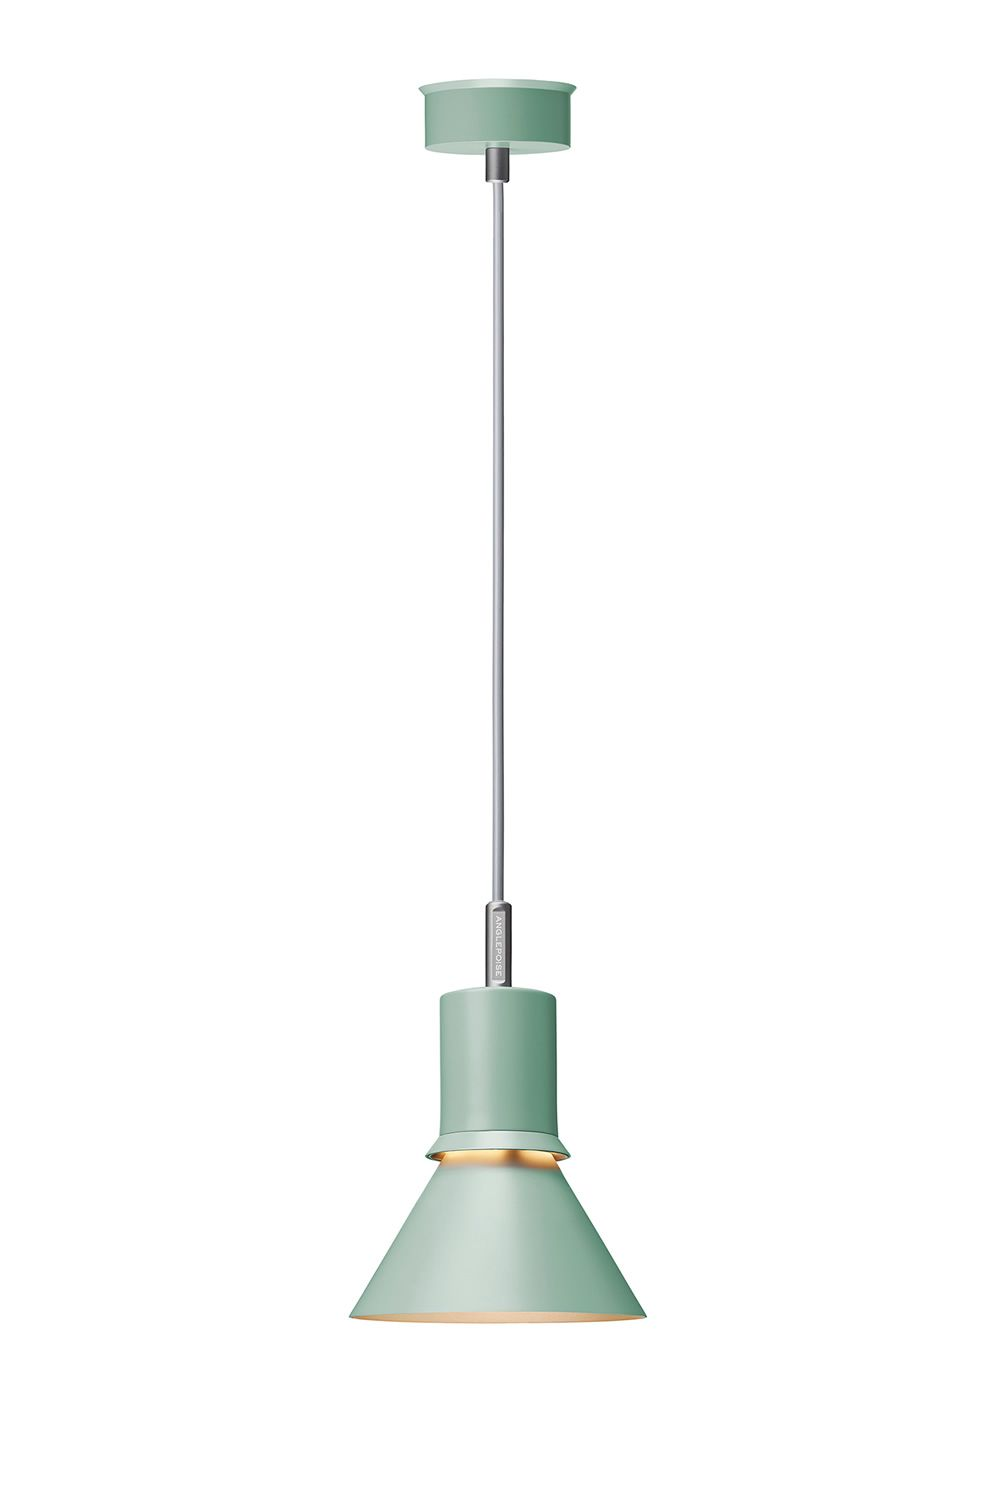 Type 80 Pendant Structure Mint green